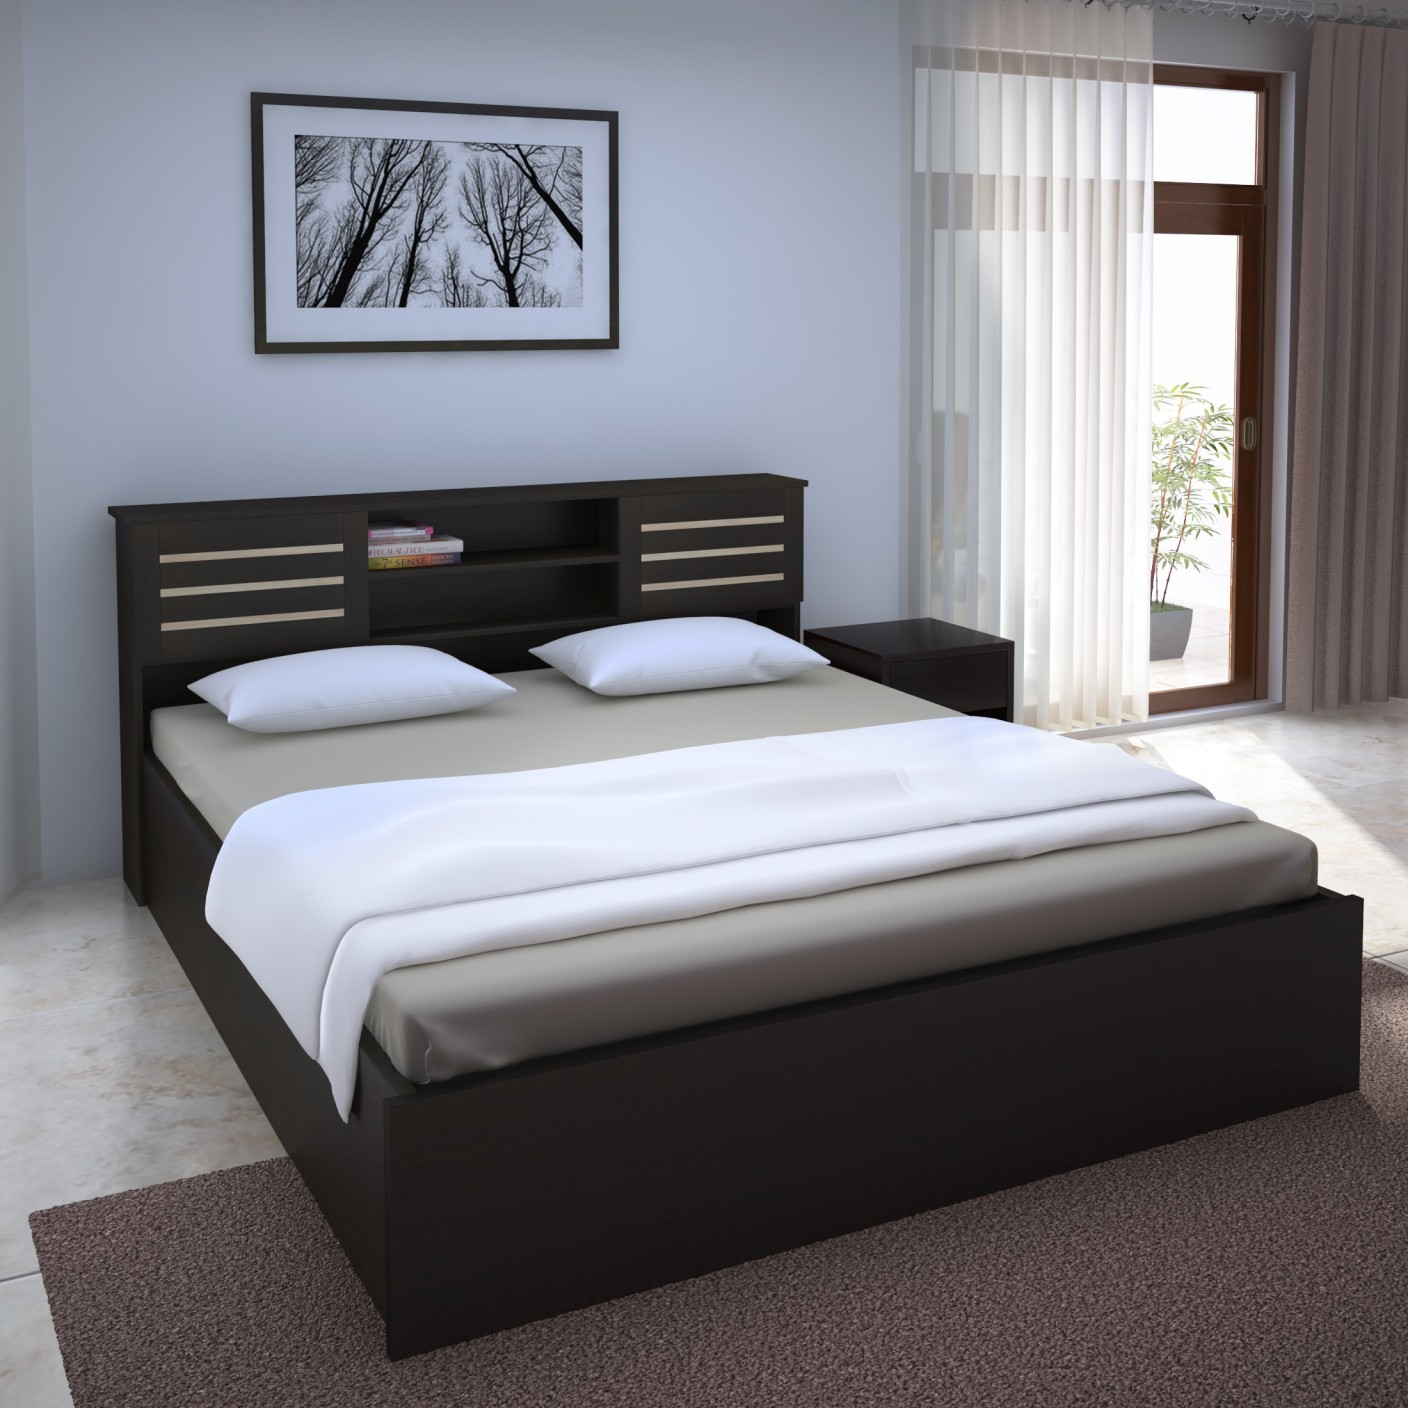 Bedroom Furniture Designs Pictures In India Grey Bedroom Colour Combination Bedroom Design With Tiles Bedroom Interior For Boys: Perfect Homes By Flipkart Waltz King Bed With Storage